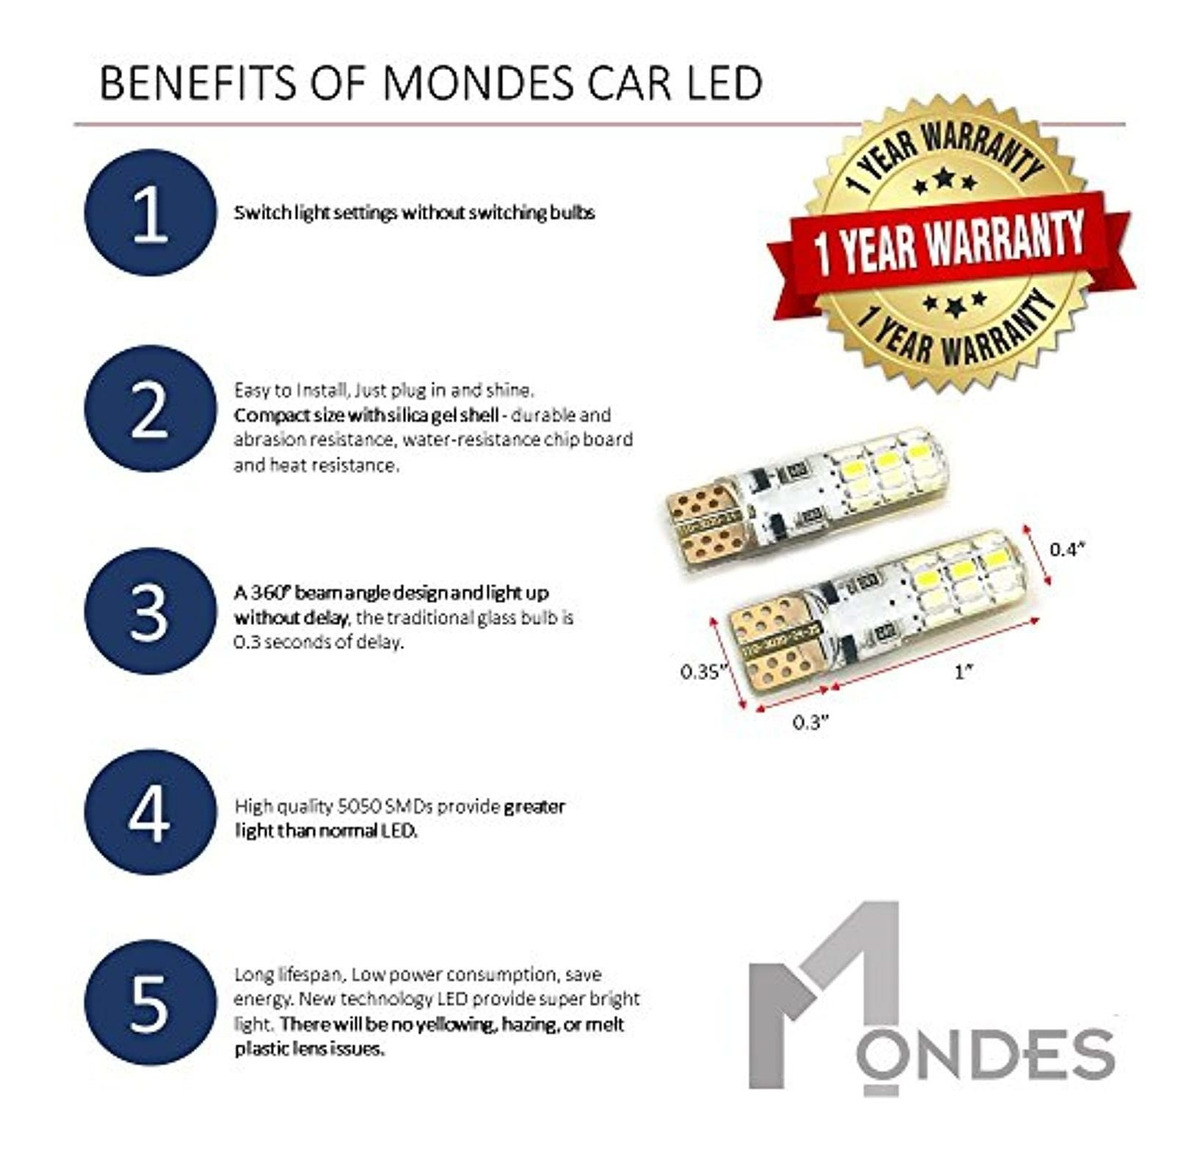 LED Replacement Bulbs 2-PACK T10 194 W5W 168 2825 TOP QUALITY 3020 LED Chips 12V DC by MONDES Super Bright 3-Color Mode Silica Gel Coated Chip Board